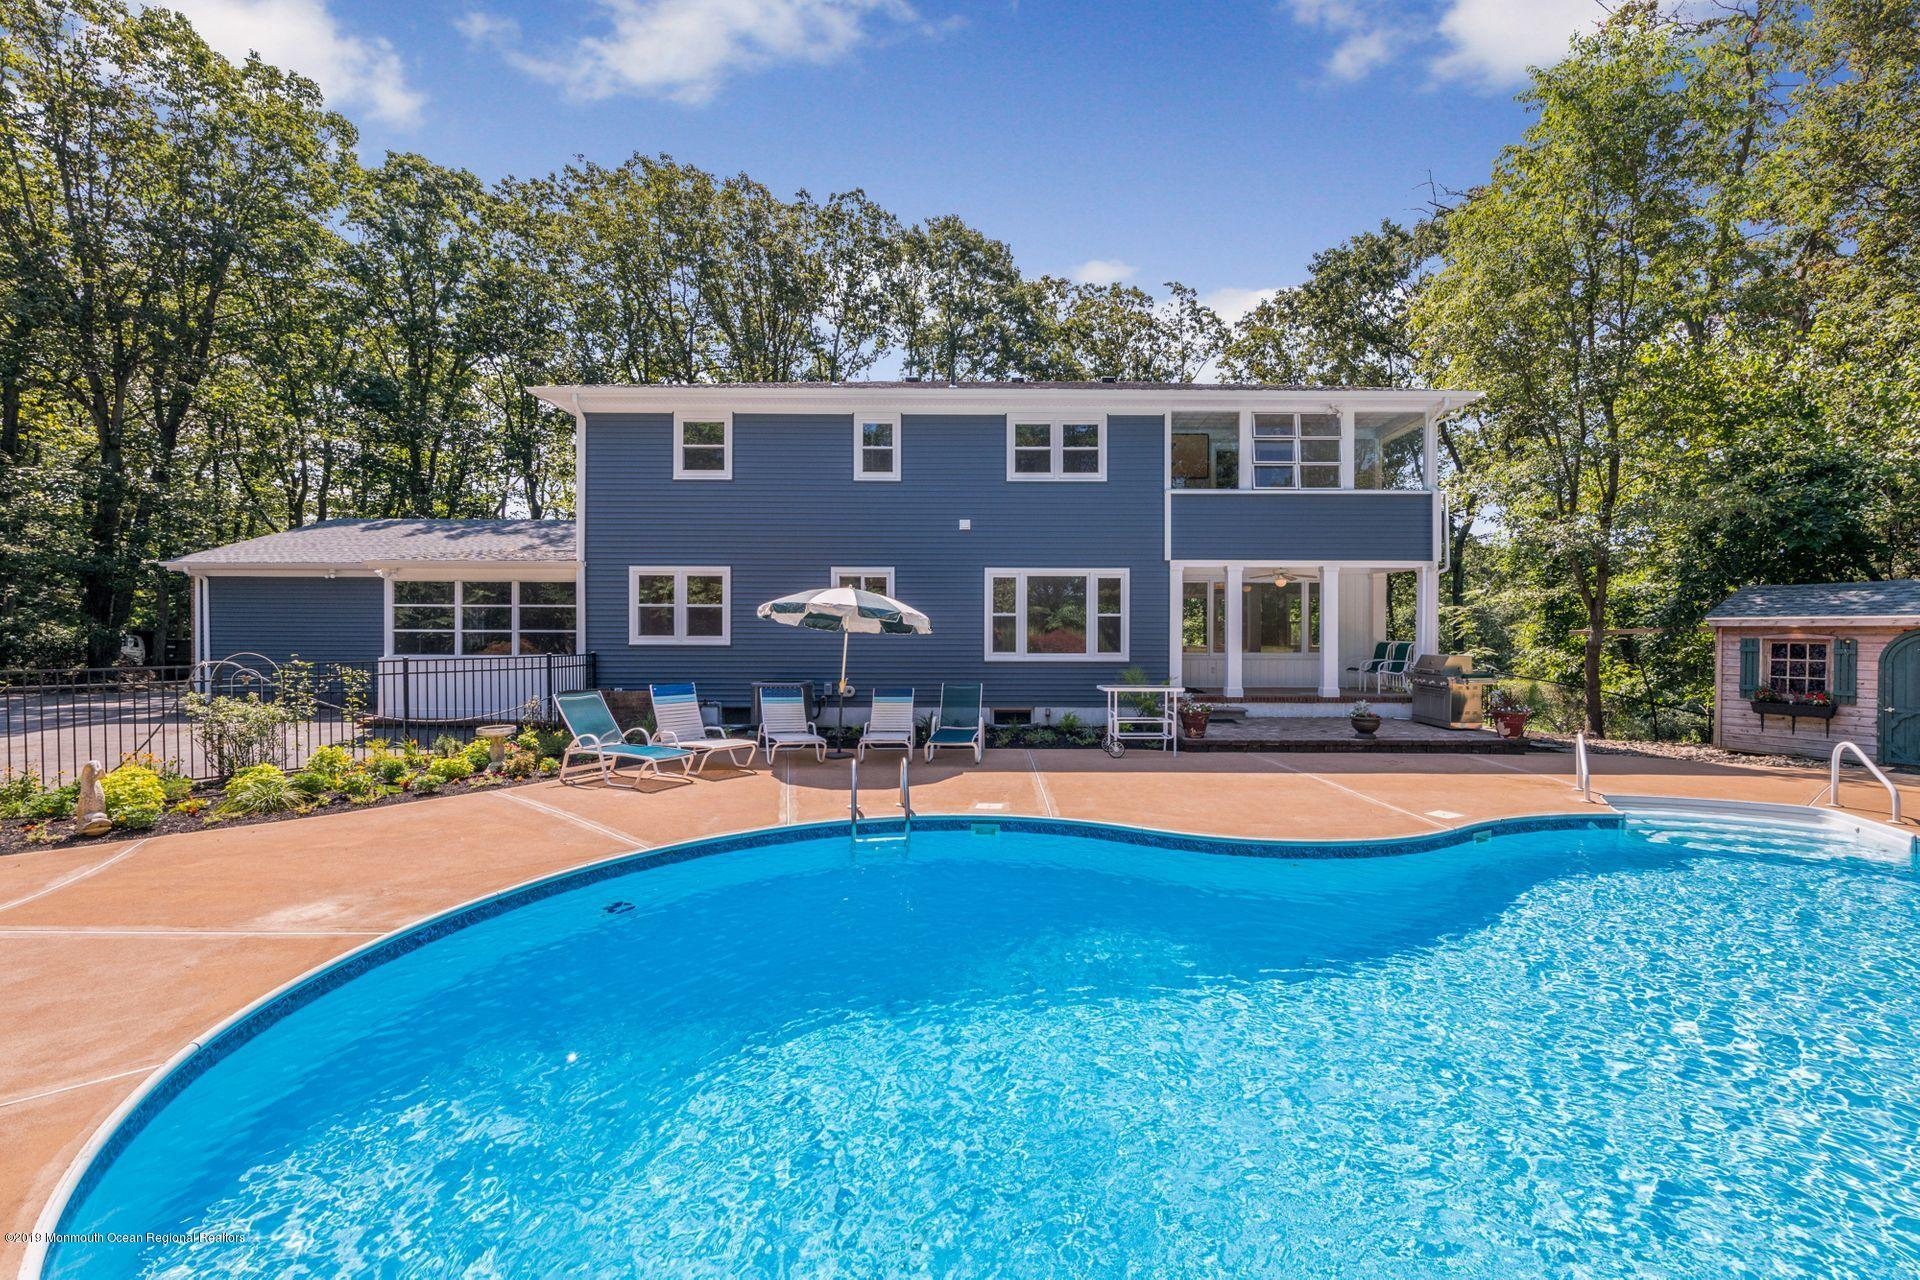 Eatontown Homes for Sale